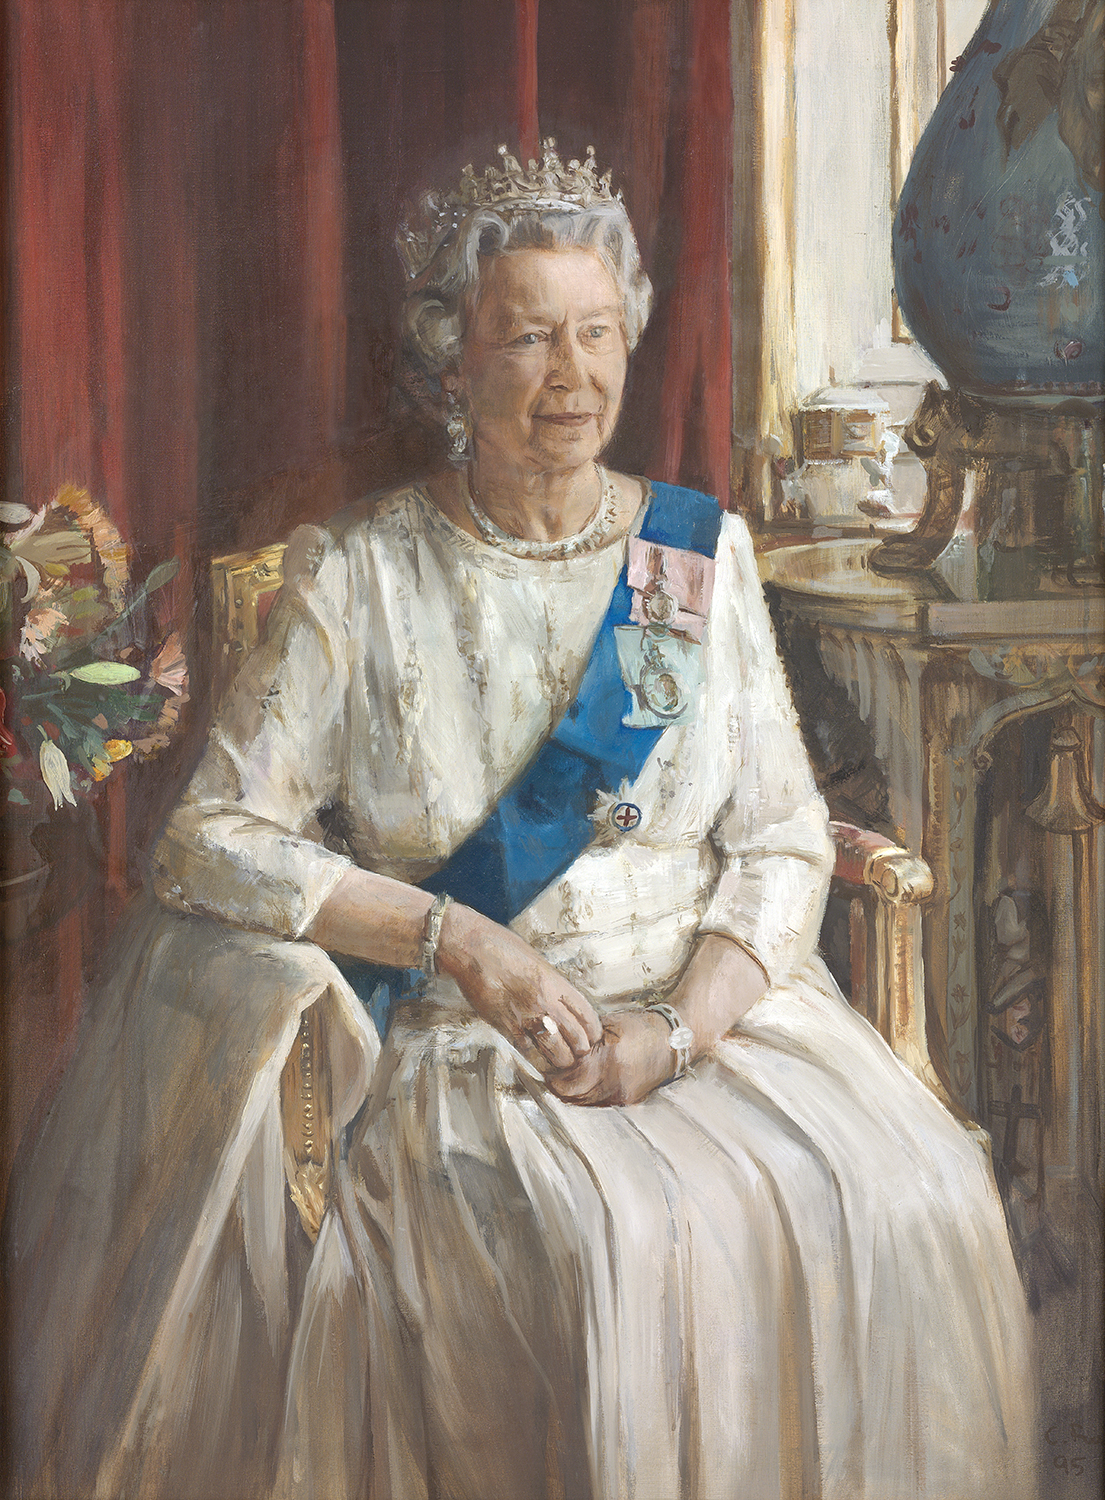 Queen Elizabeth II by Christian Furr 1995